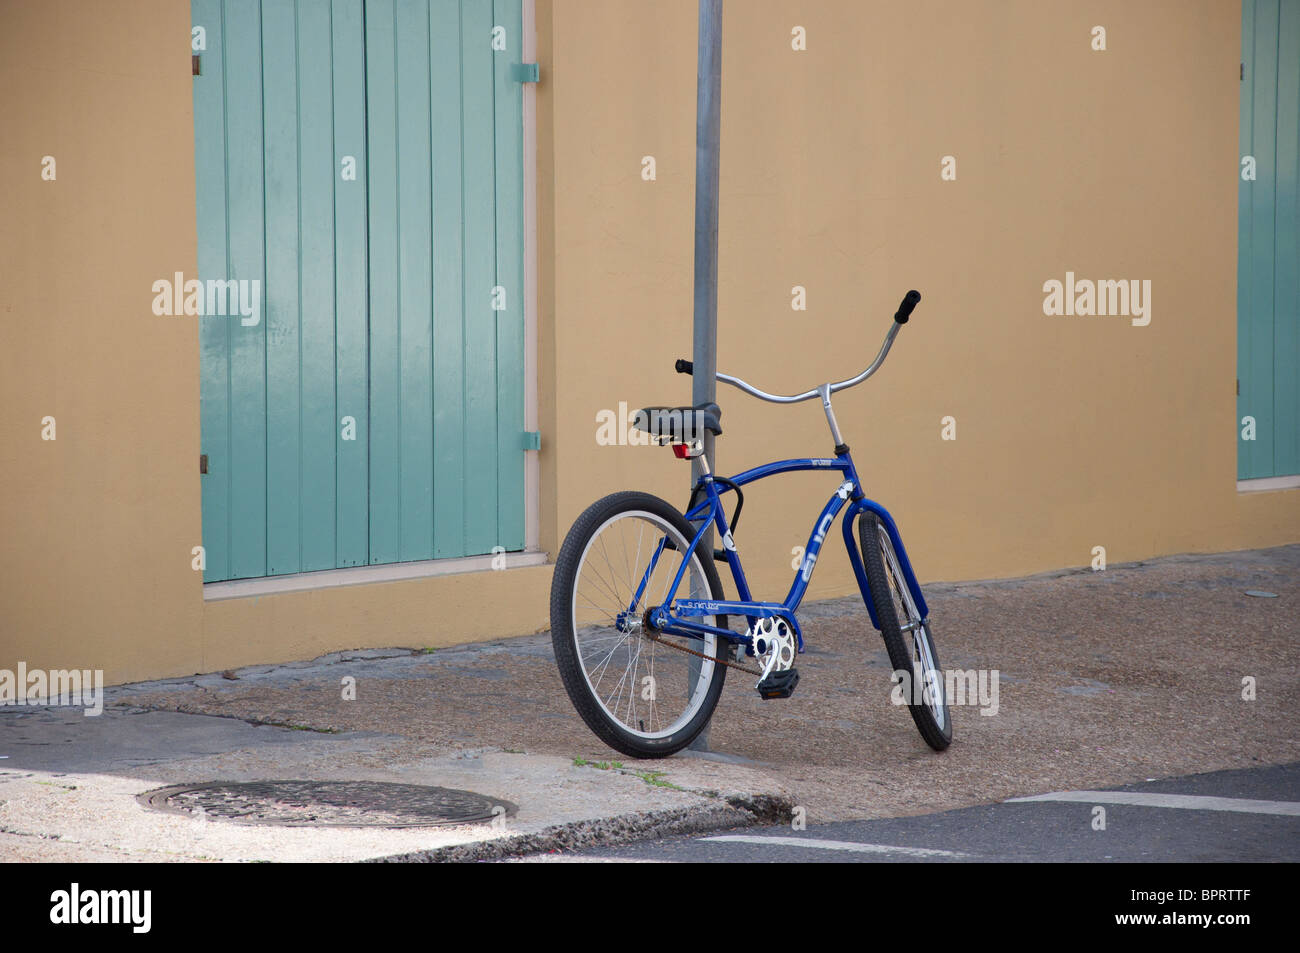 blue bicycle parked on sidewalk - Stock Image